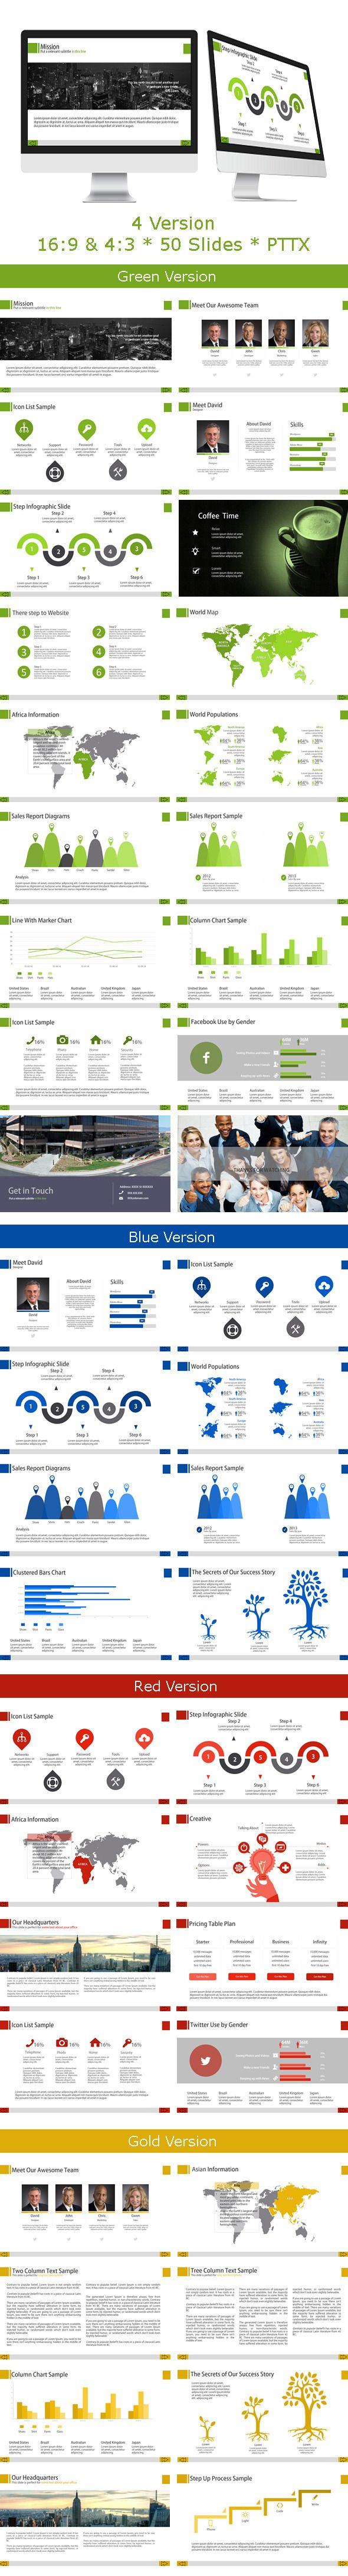 Ptl PowerPoint Template (Powerpoint Templates) demo1